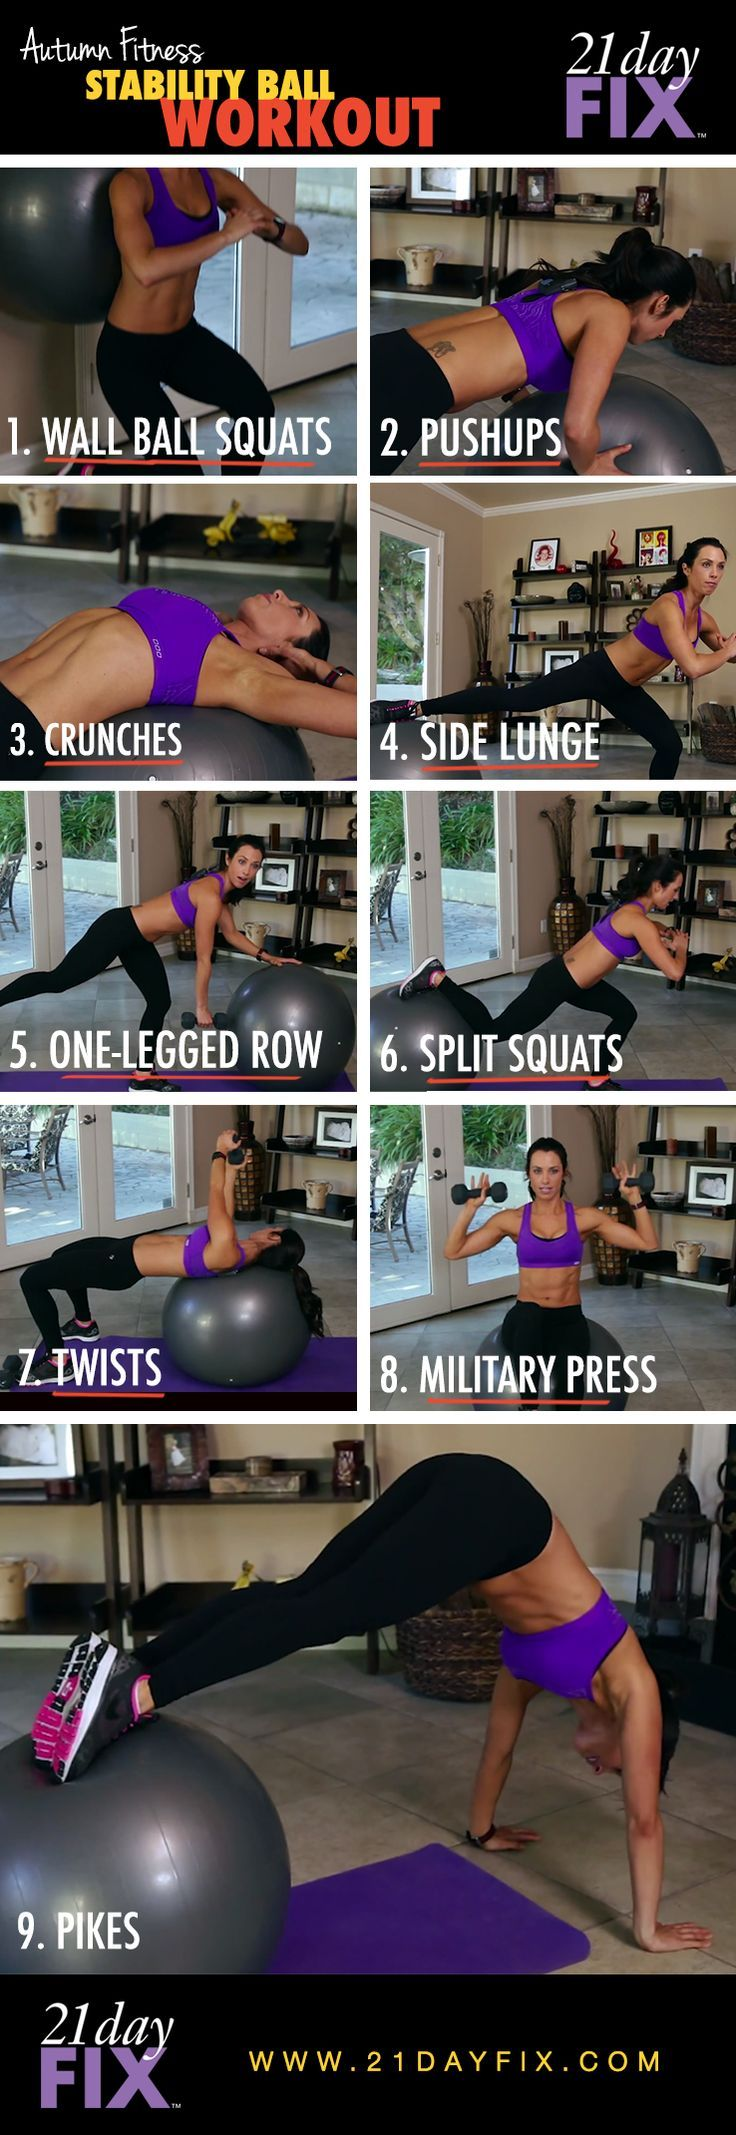 Looking for a challenge to help you start losing weight? Try these stability ball exercises. Start working out today for the body you want! http://www.onesteptoweightloss.com/21-day-fix-workout-review #15LBWeightLoss